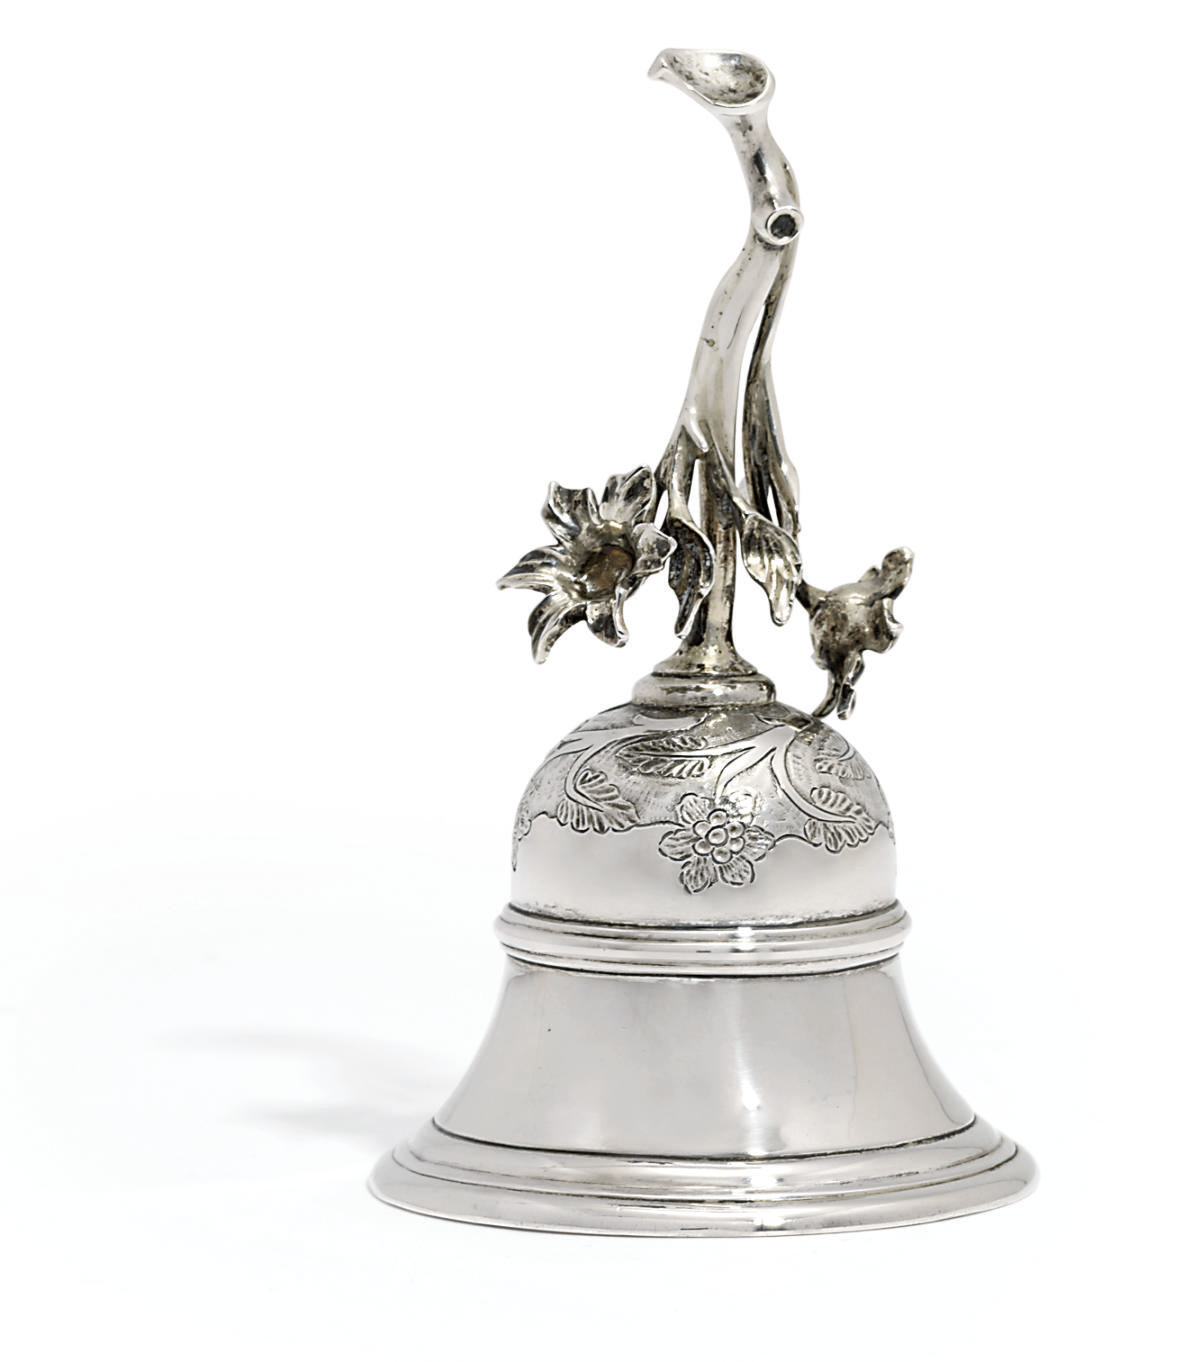 A DUTCH SILVER TABLE-BELL